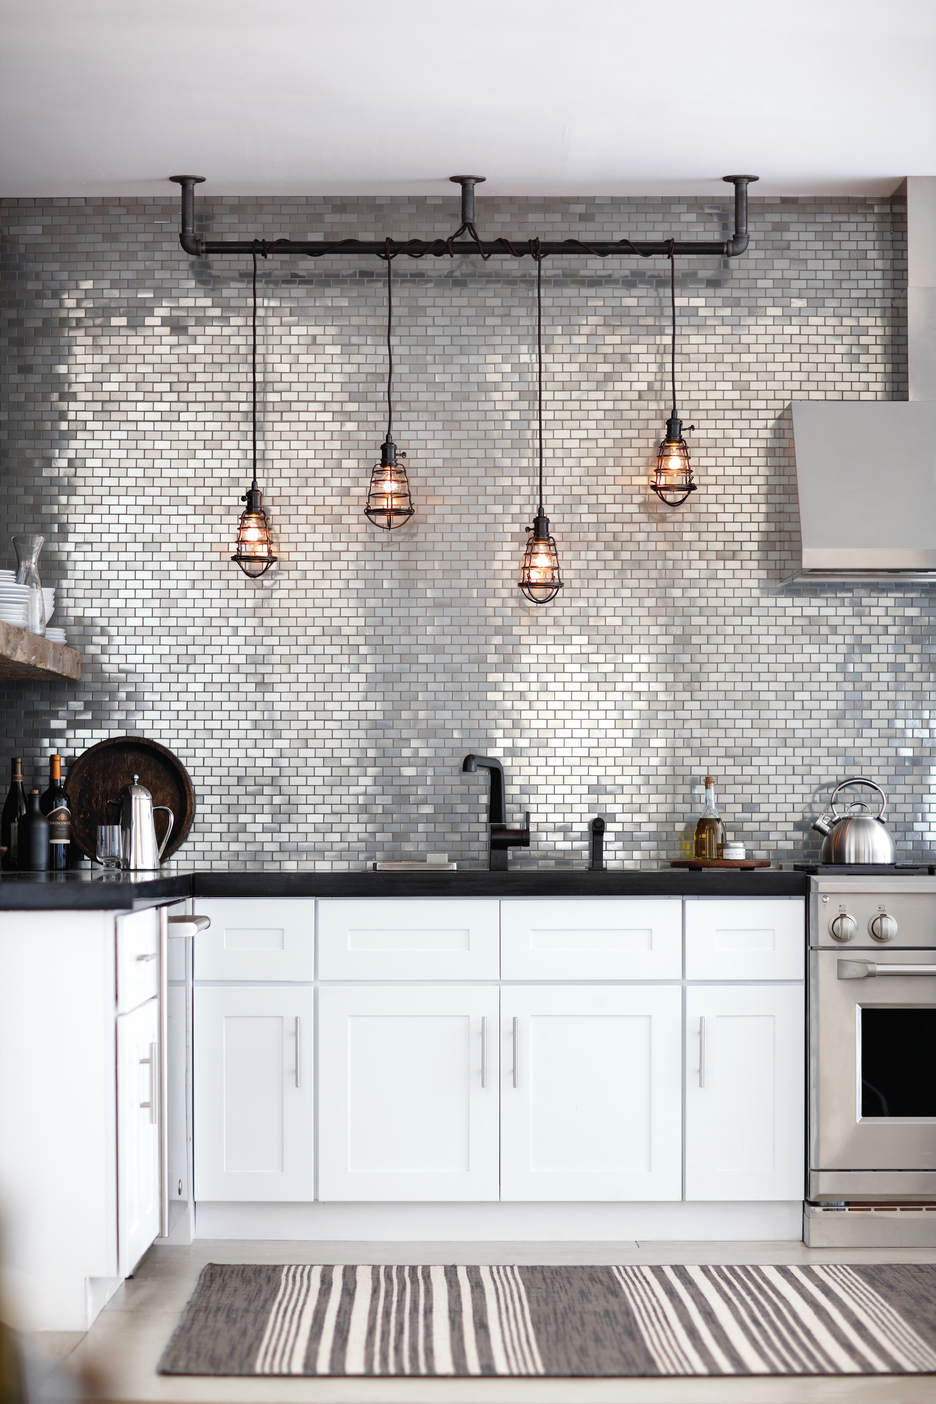 18 unique kitchen backsplash design ideas style motivation